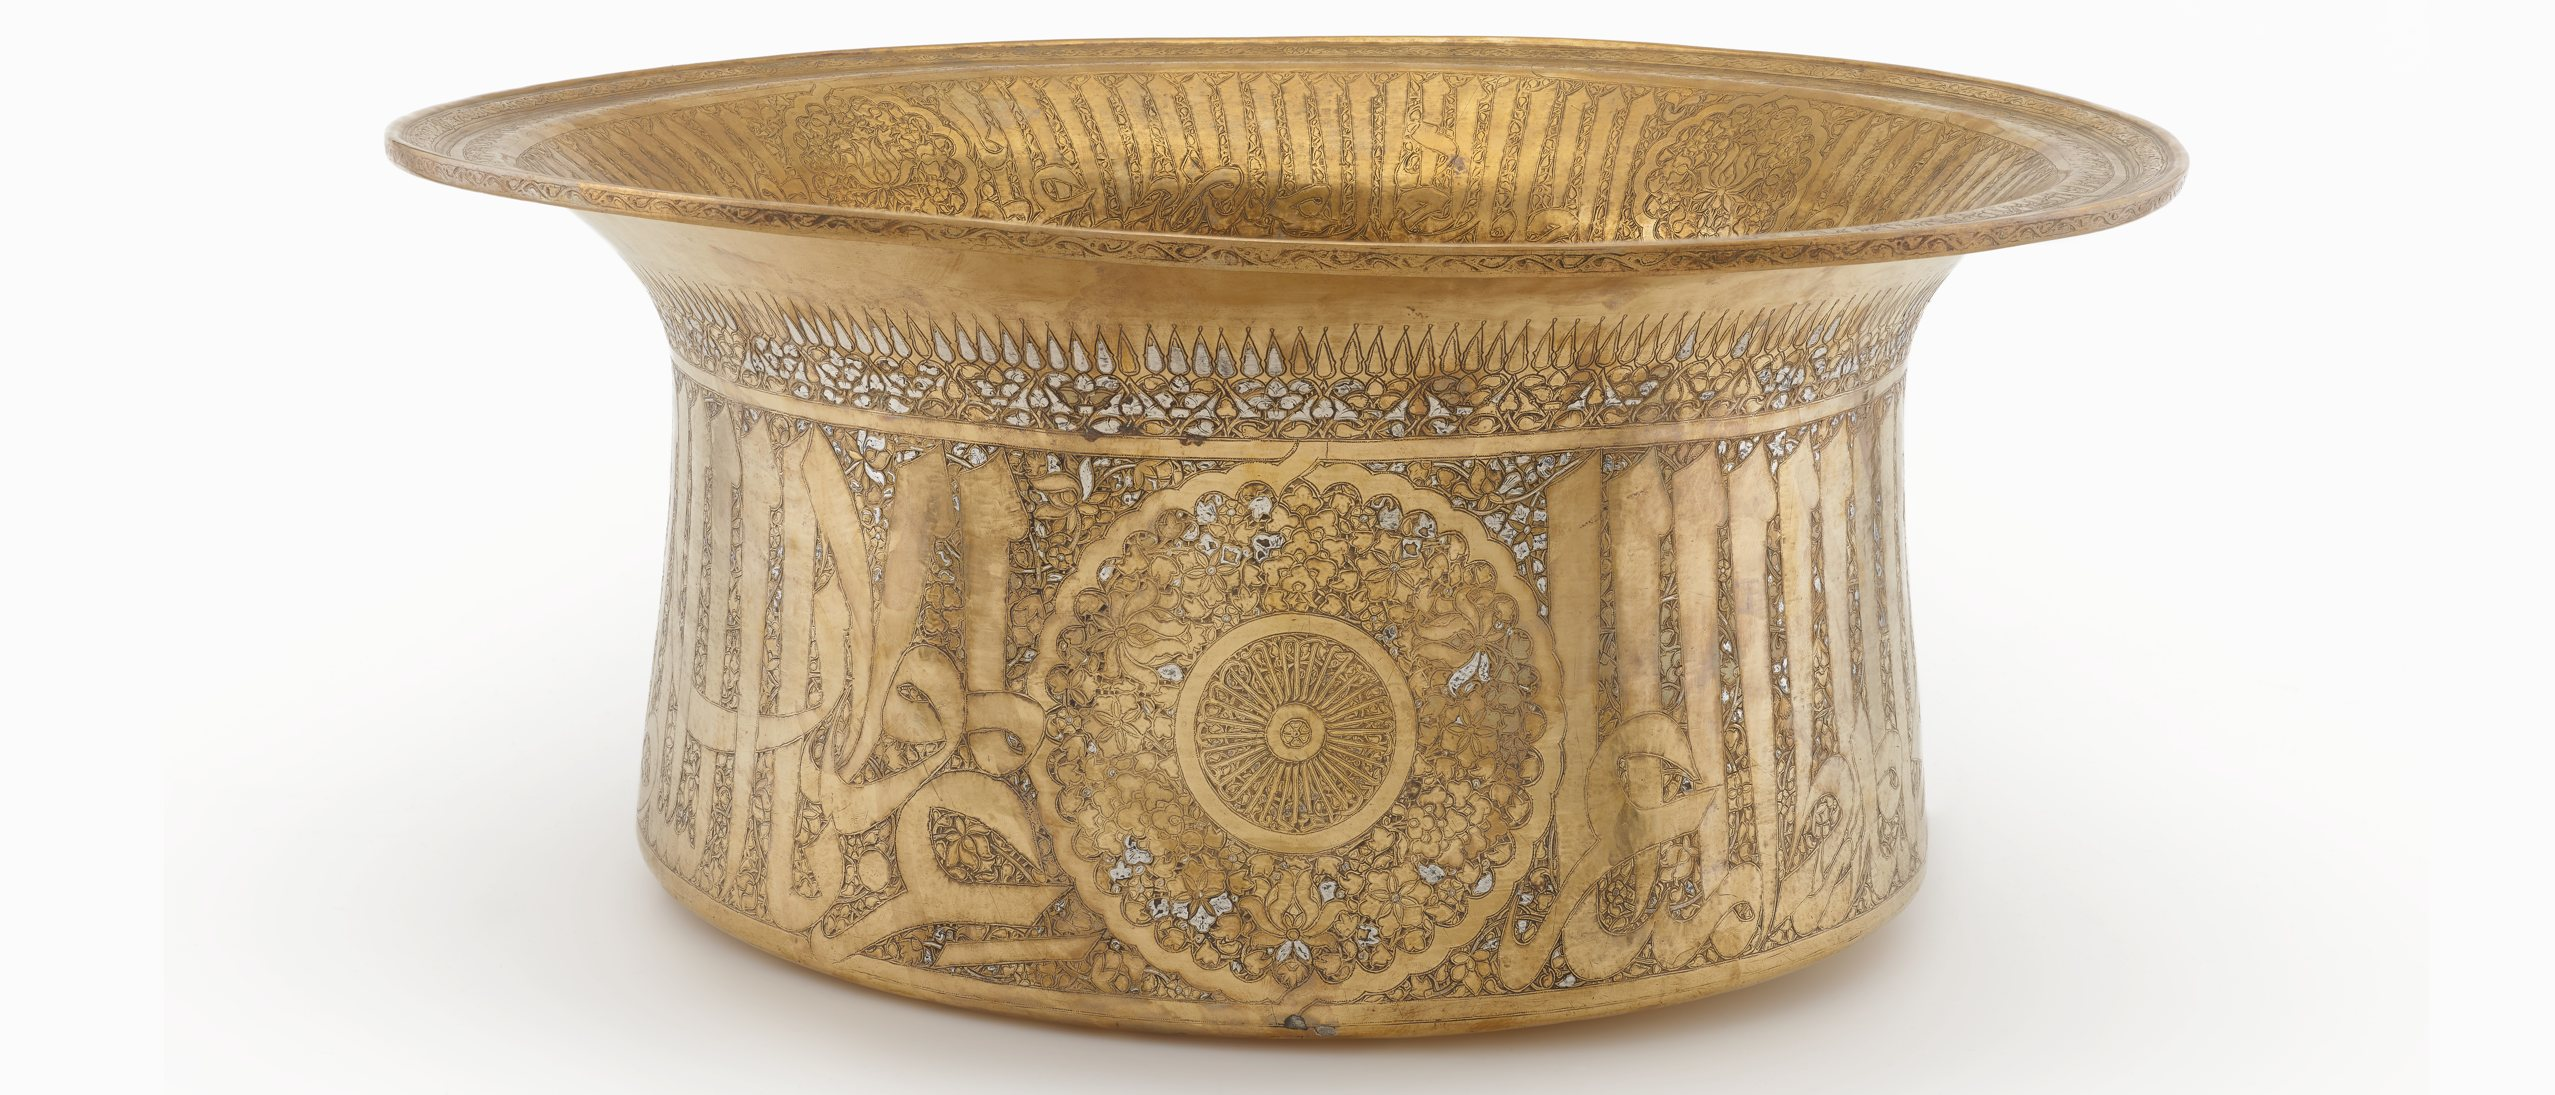 brass basin engraved with calligraphy